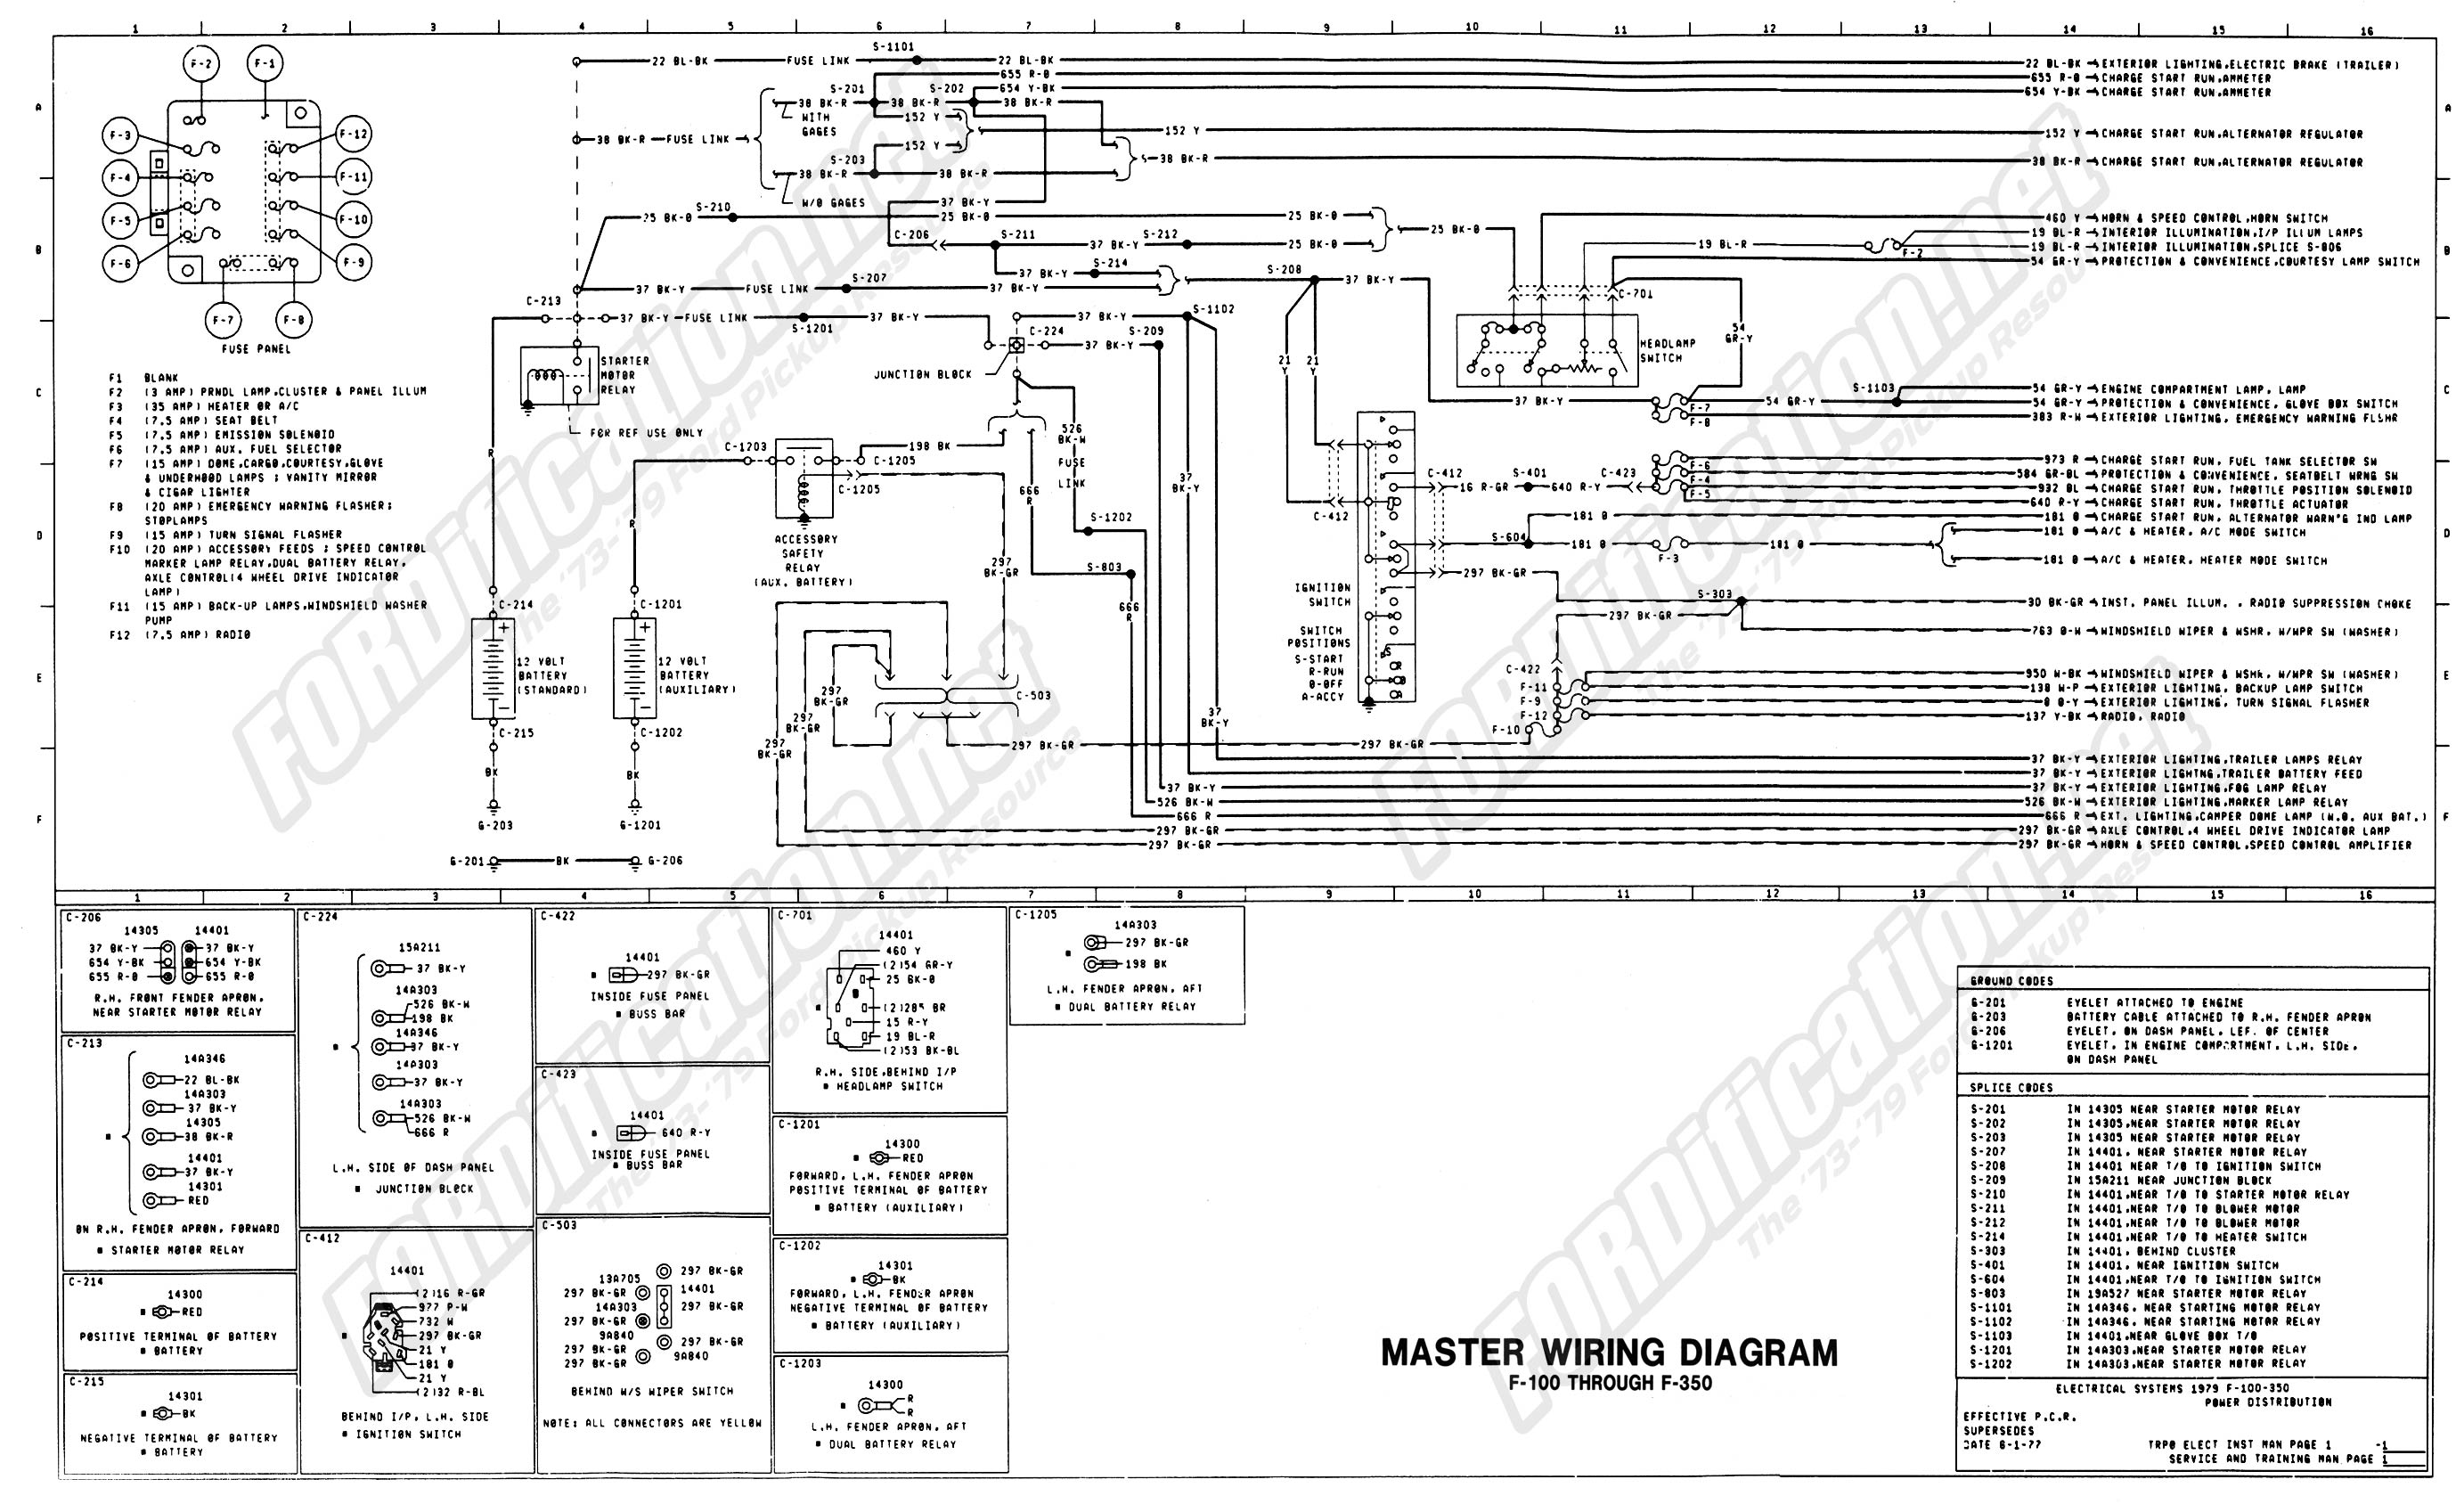 1979 f100 ignition switch wiring diagram positions? ford 1979 Ford Truck Ignition Switch Wiring Diagram